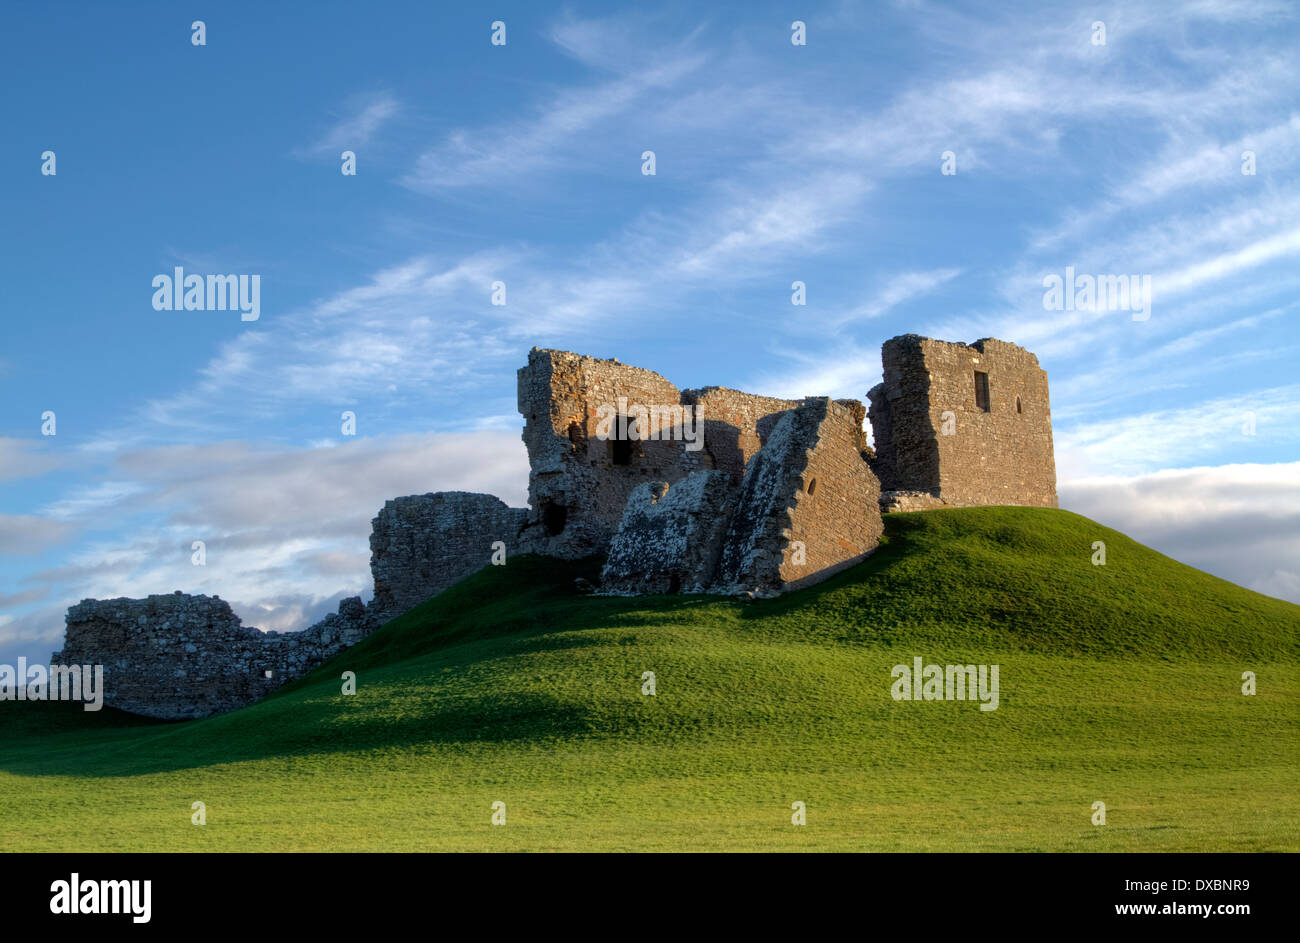 The remains of Dufus Castle, Scotland.  One of the finest examples of a motte and bailey castle in Scotland. Stock Photo